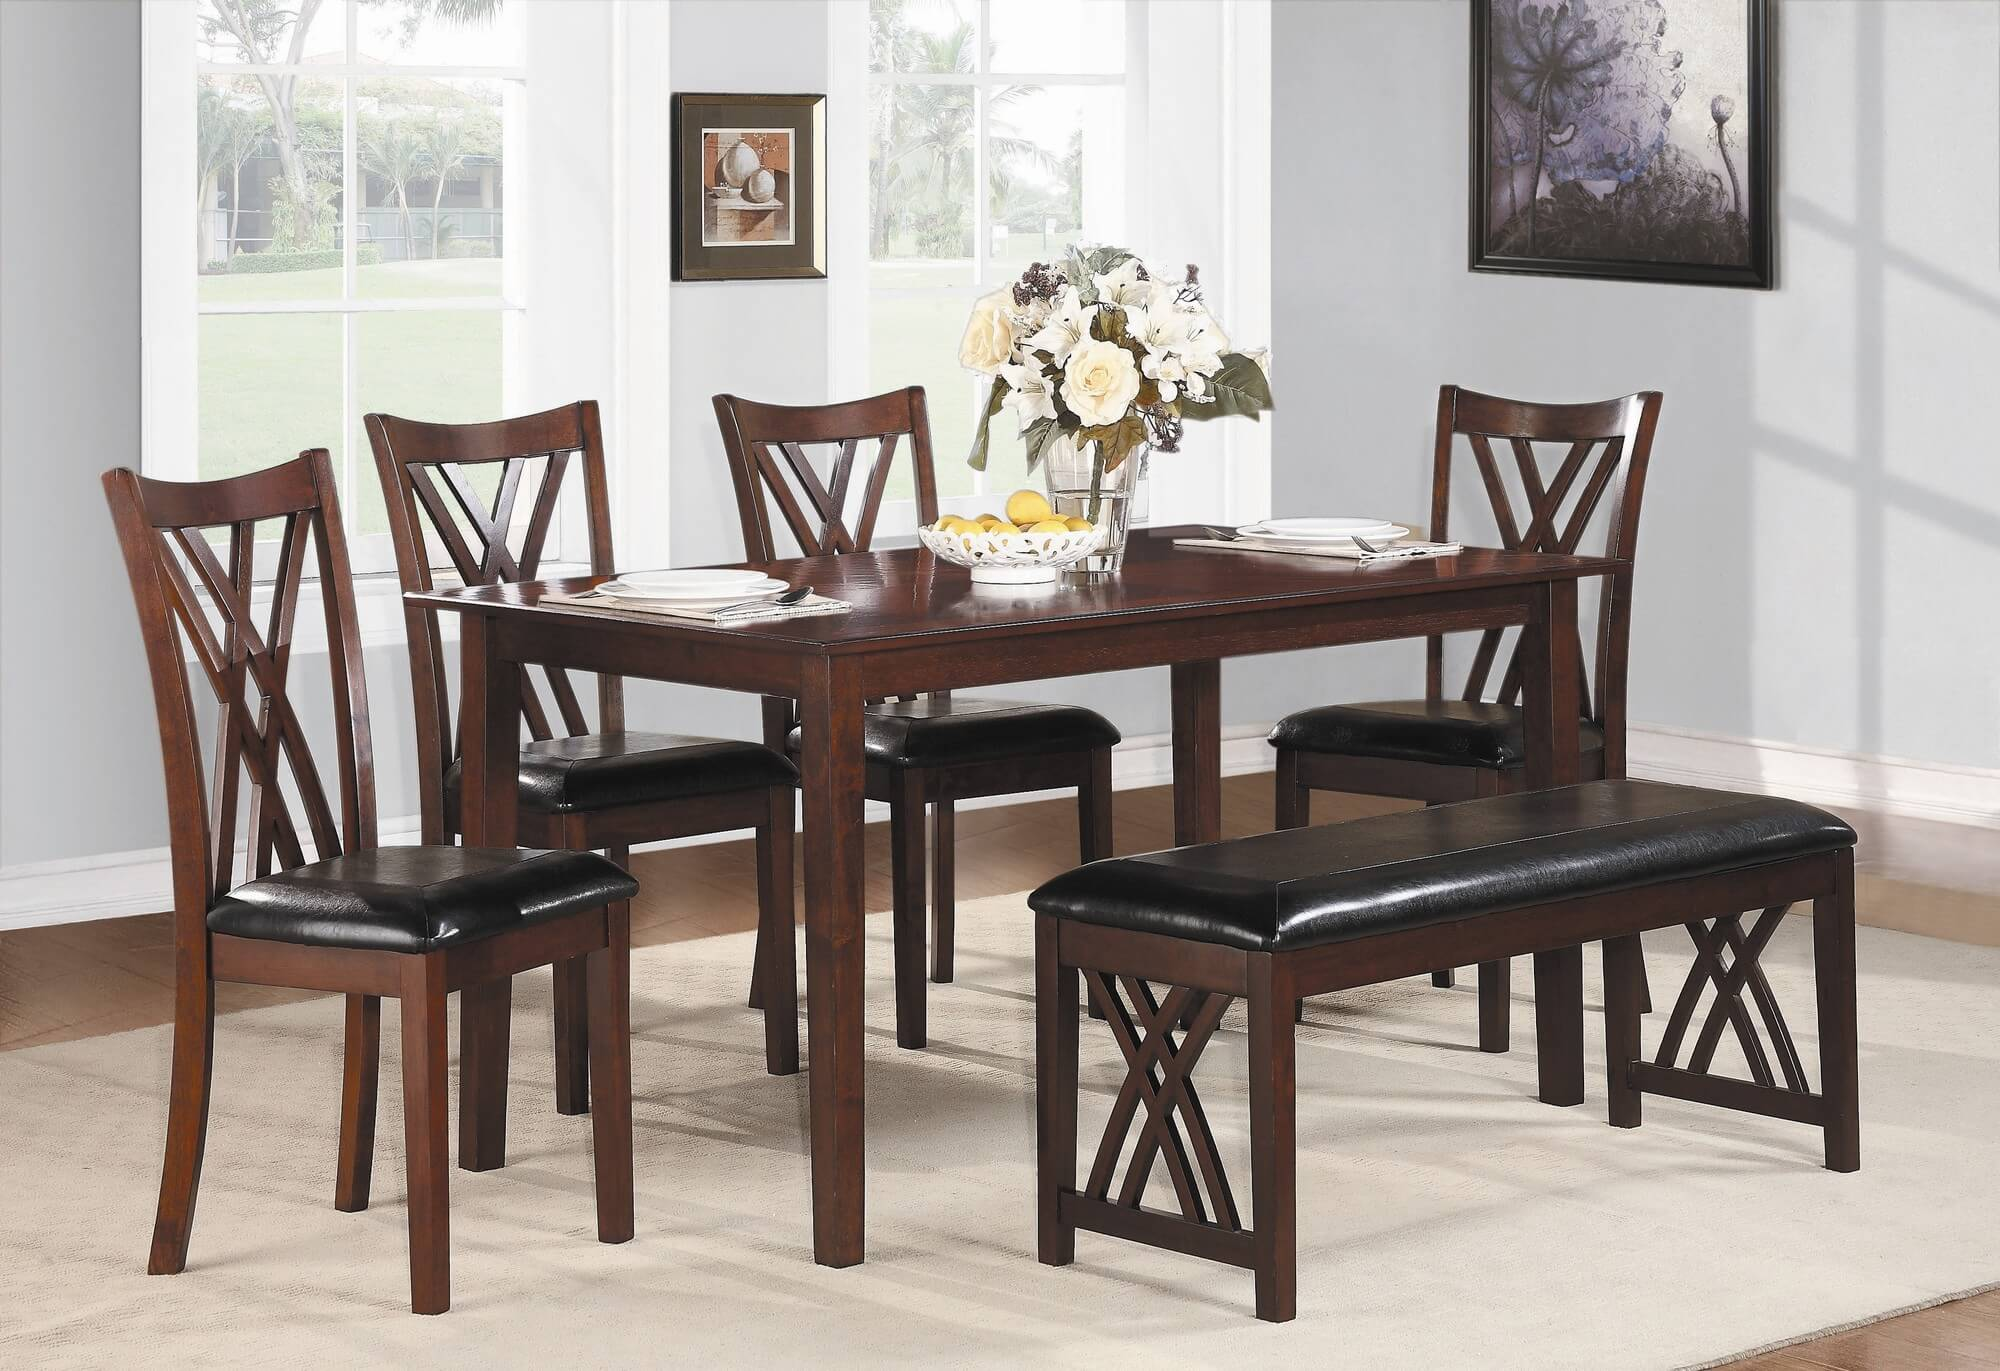 Six Piece Dining Set With Bench A Cherry Finish And Upholstered Chairs